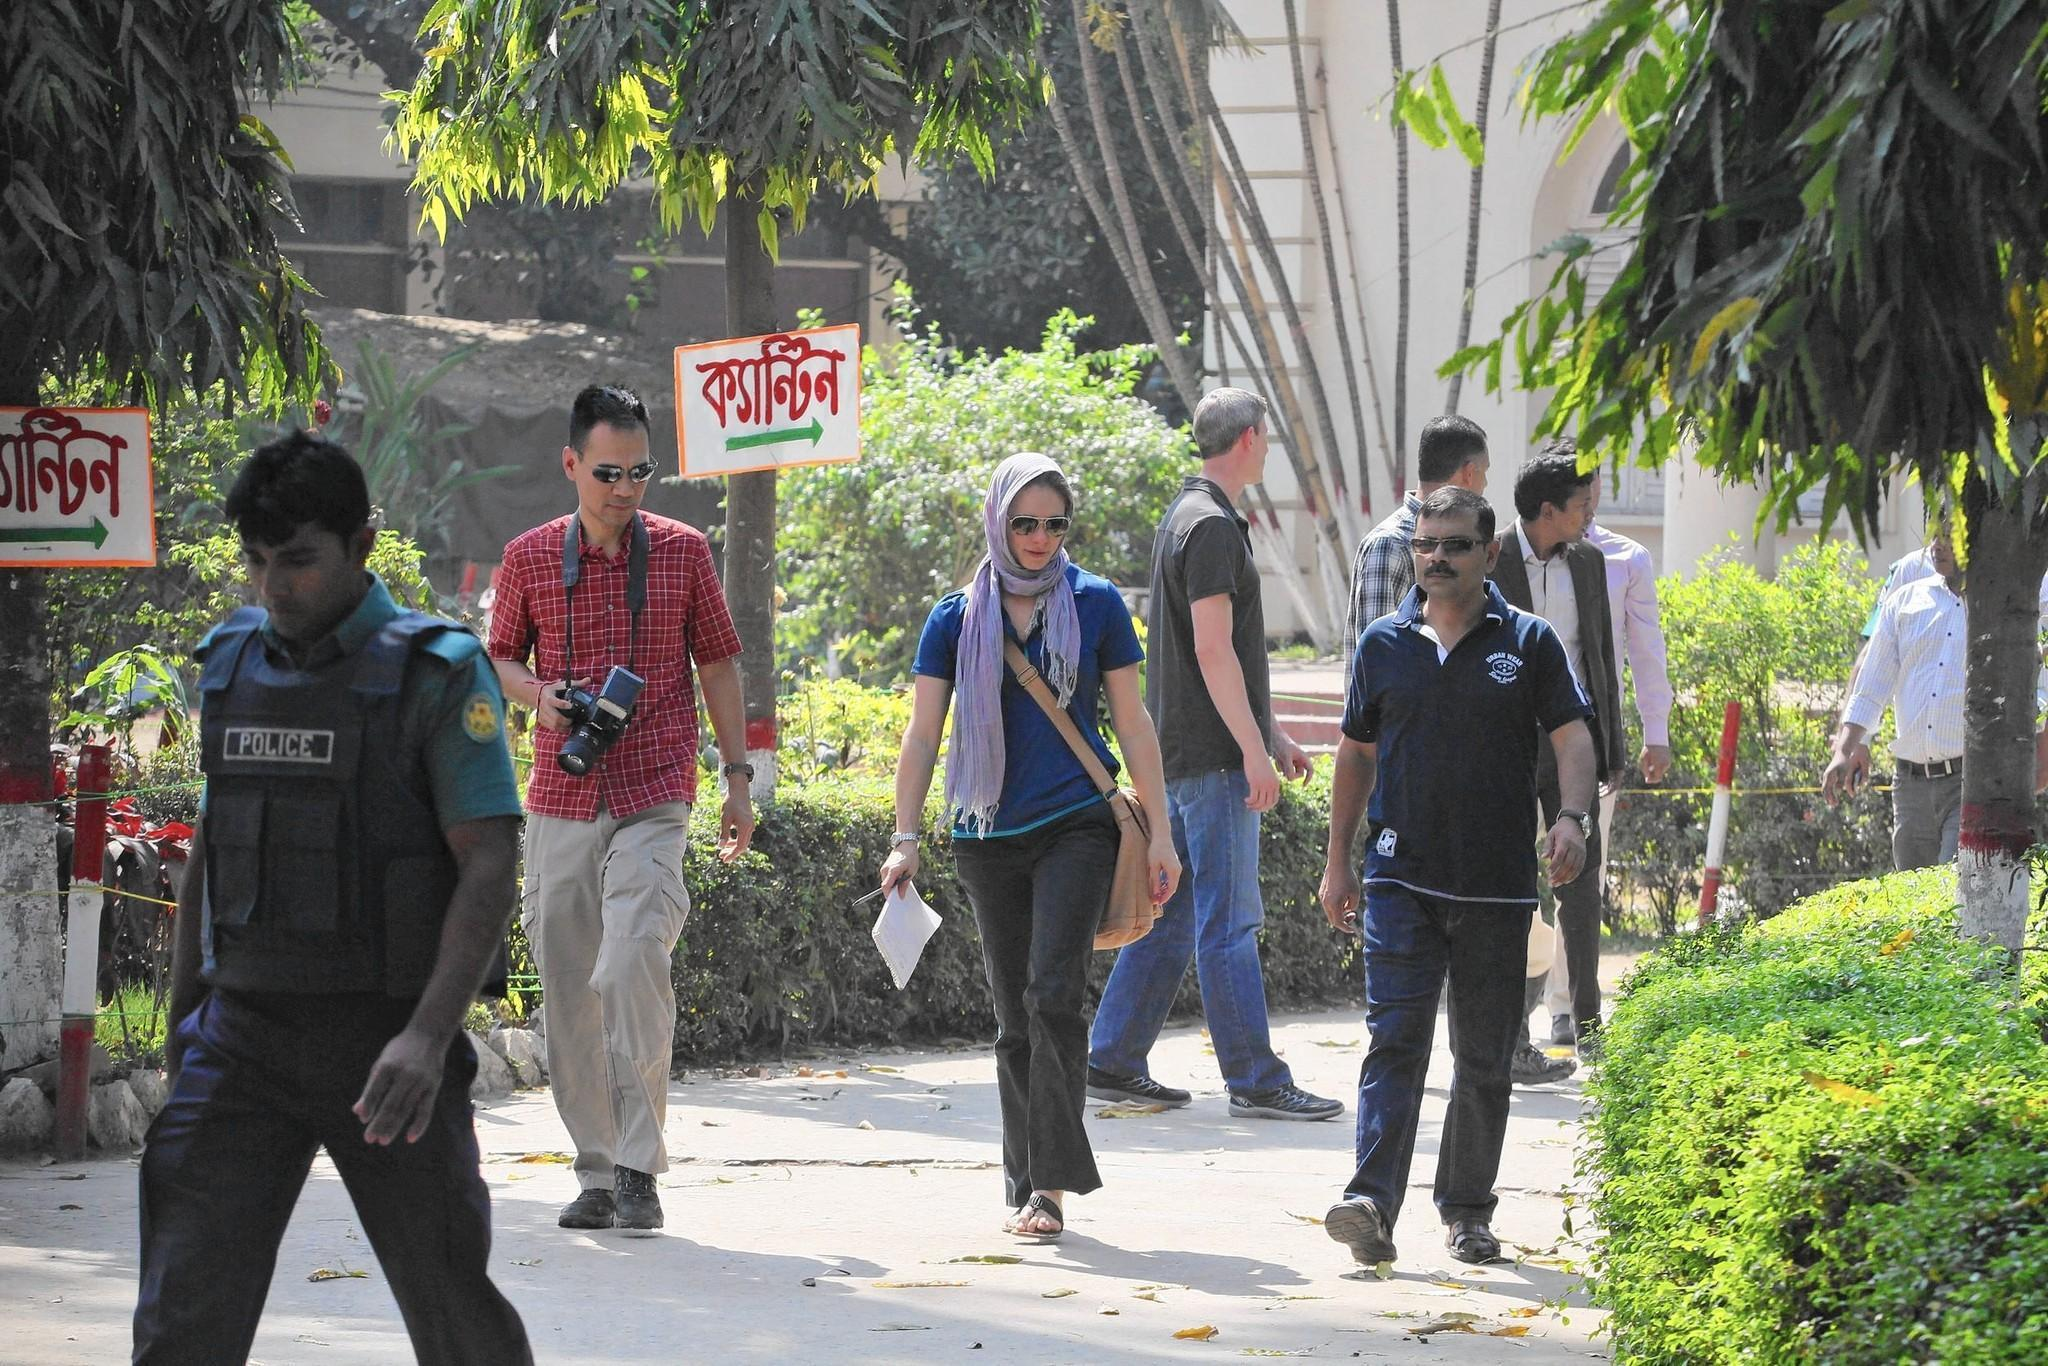 Dhaka police let killers of American Avijit Roy escape, father says